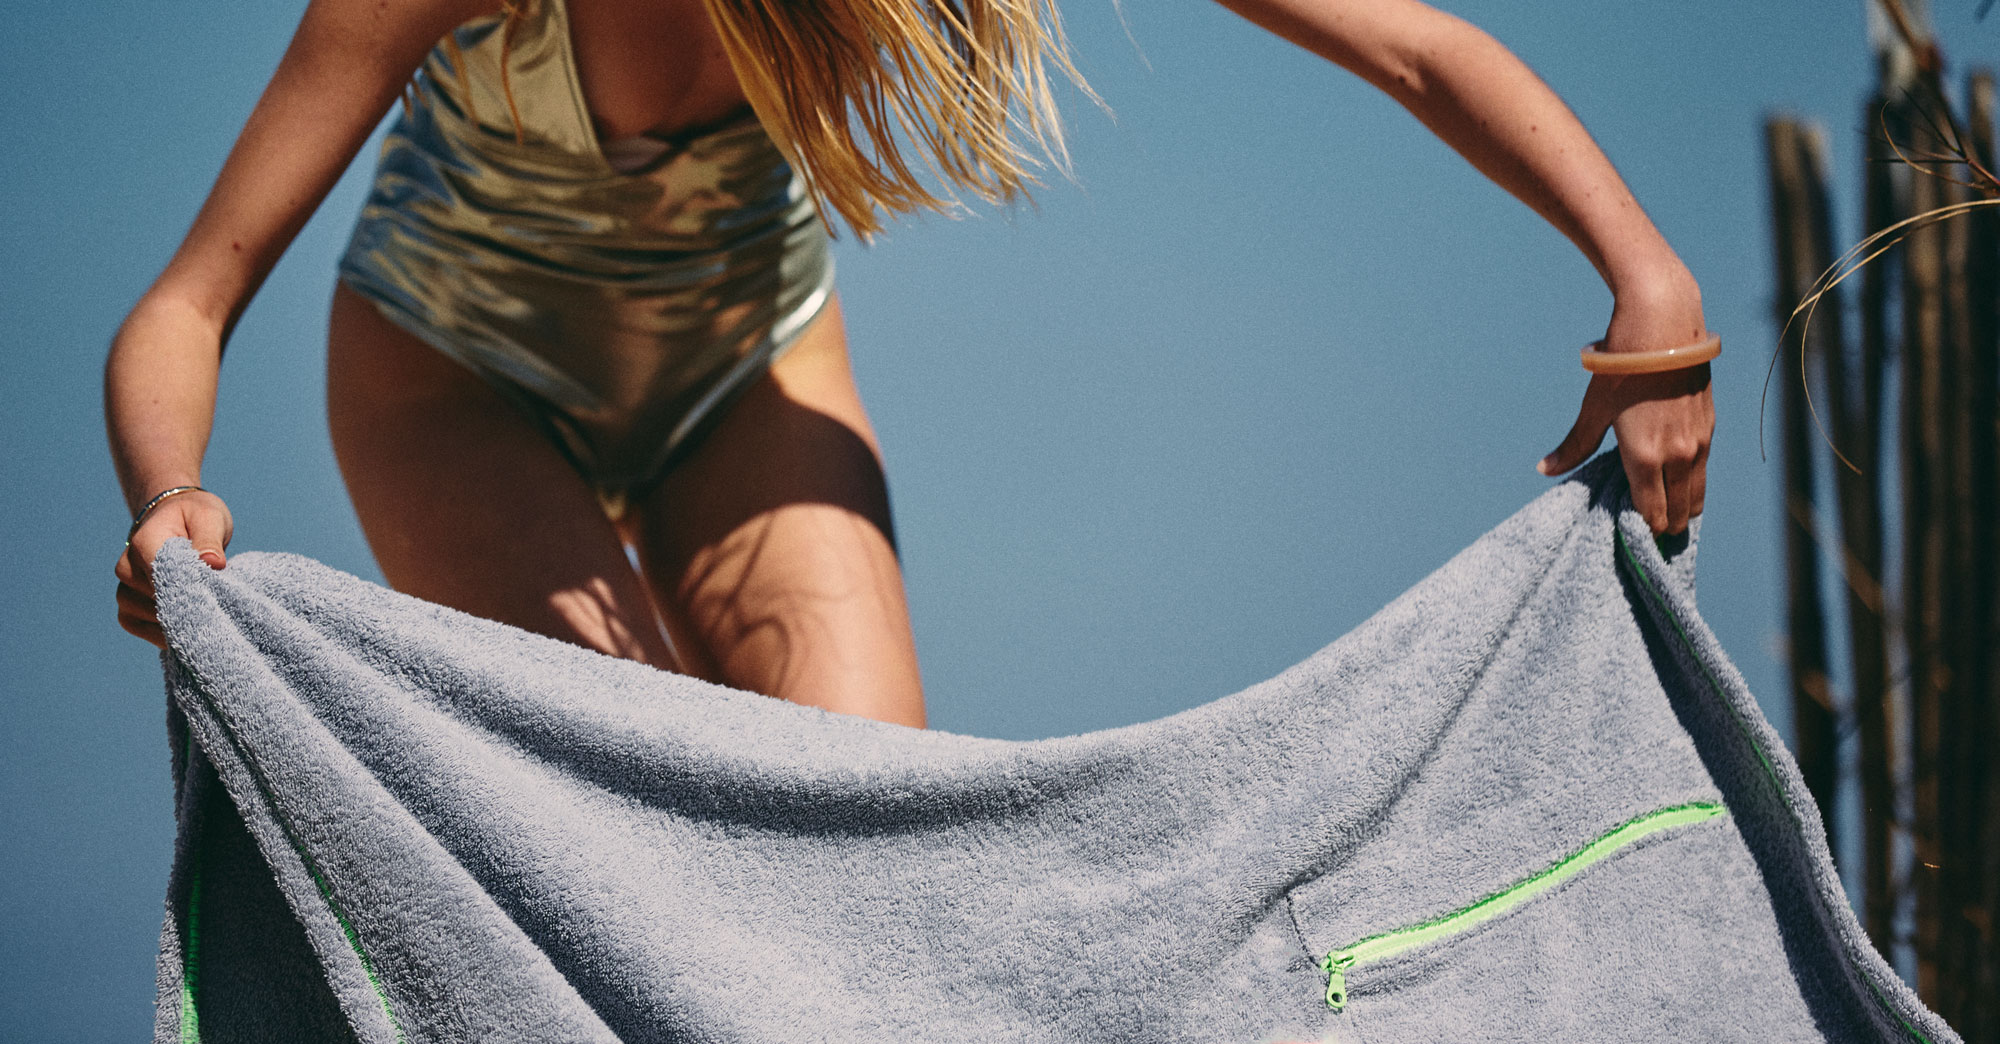 beach-towel2.jpg